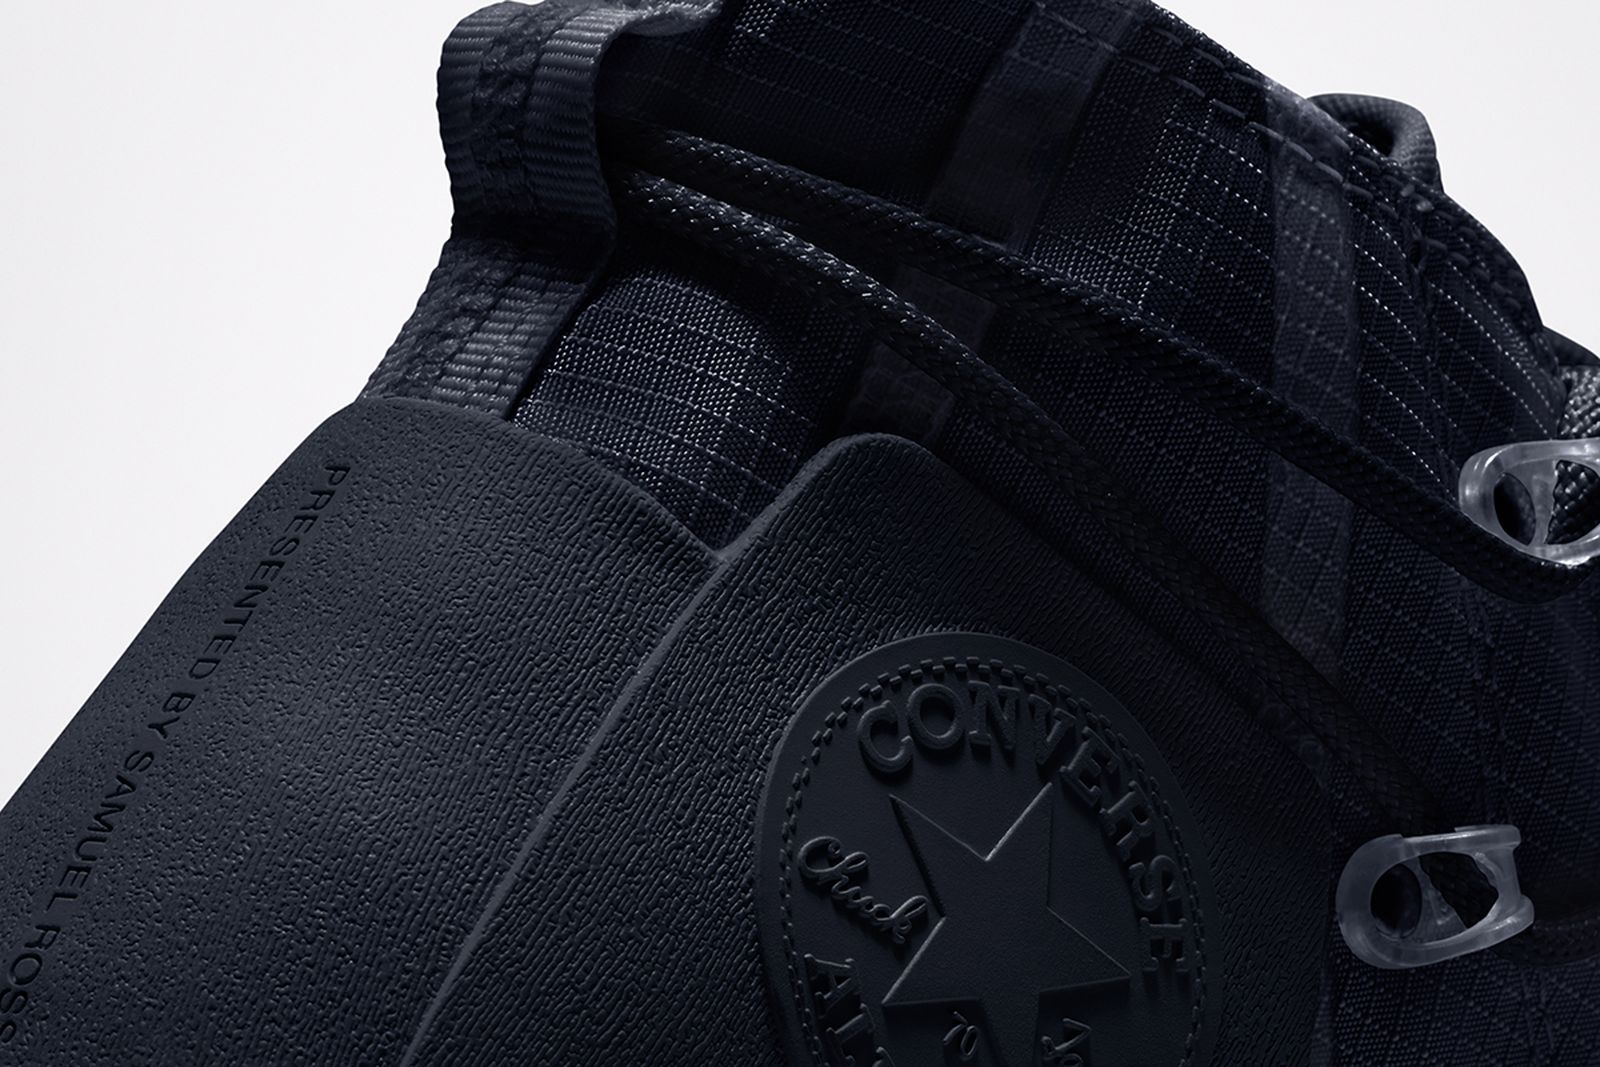 a-cold-wall-converse-chuck-taylor-lugged-black-release-date-price-1-08